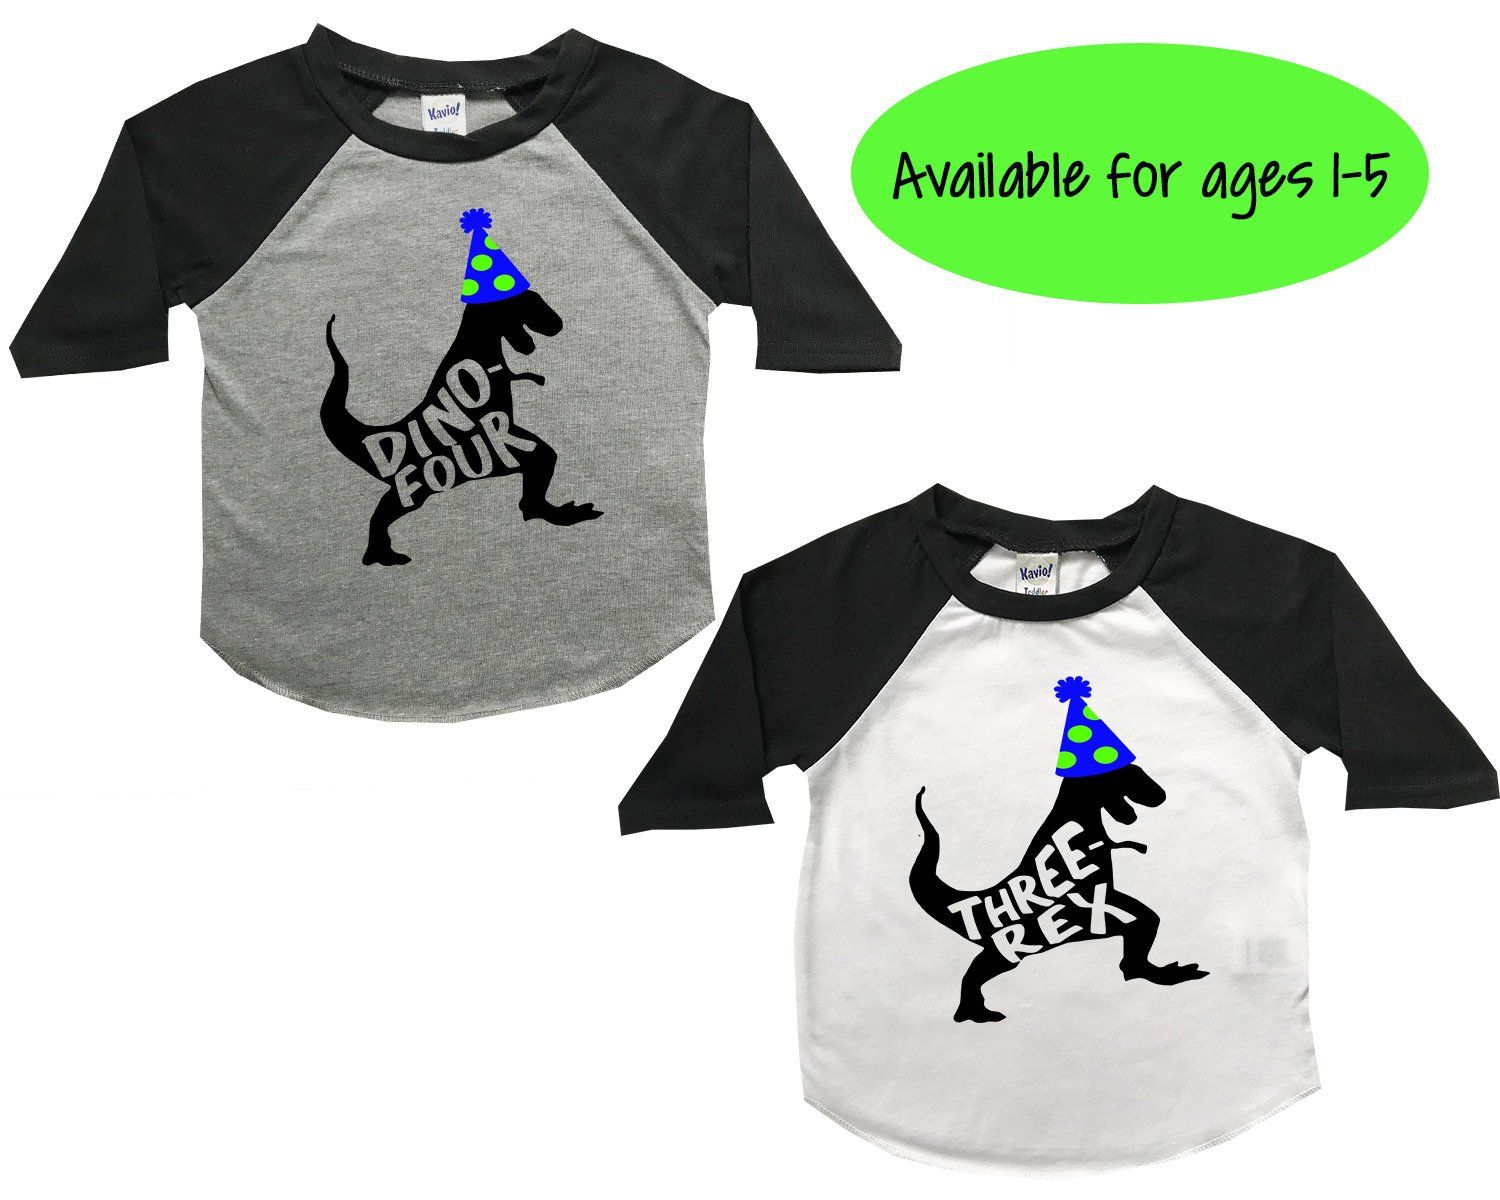 Dinosaur Birthday Shirt Four Years Old Dino Boys Toddler Theme Three Rex By PeachTeeCo On